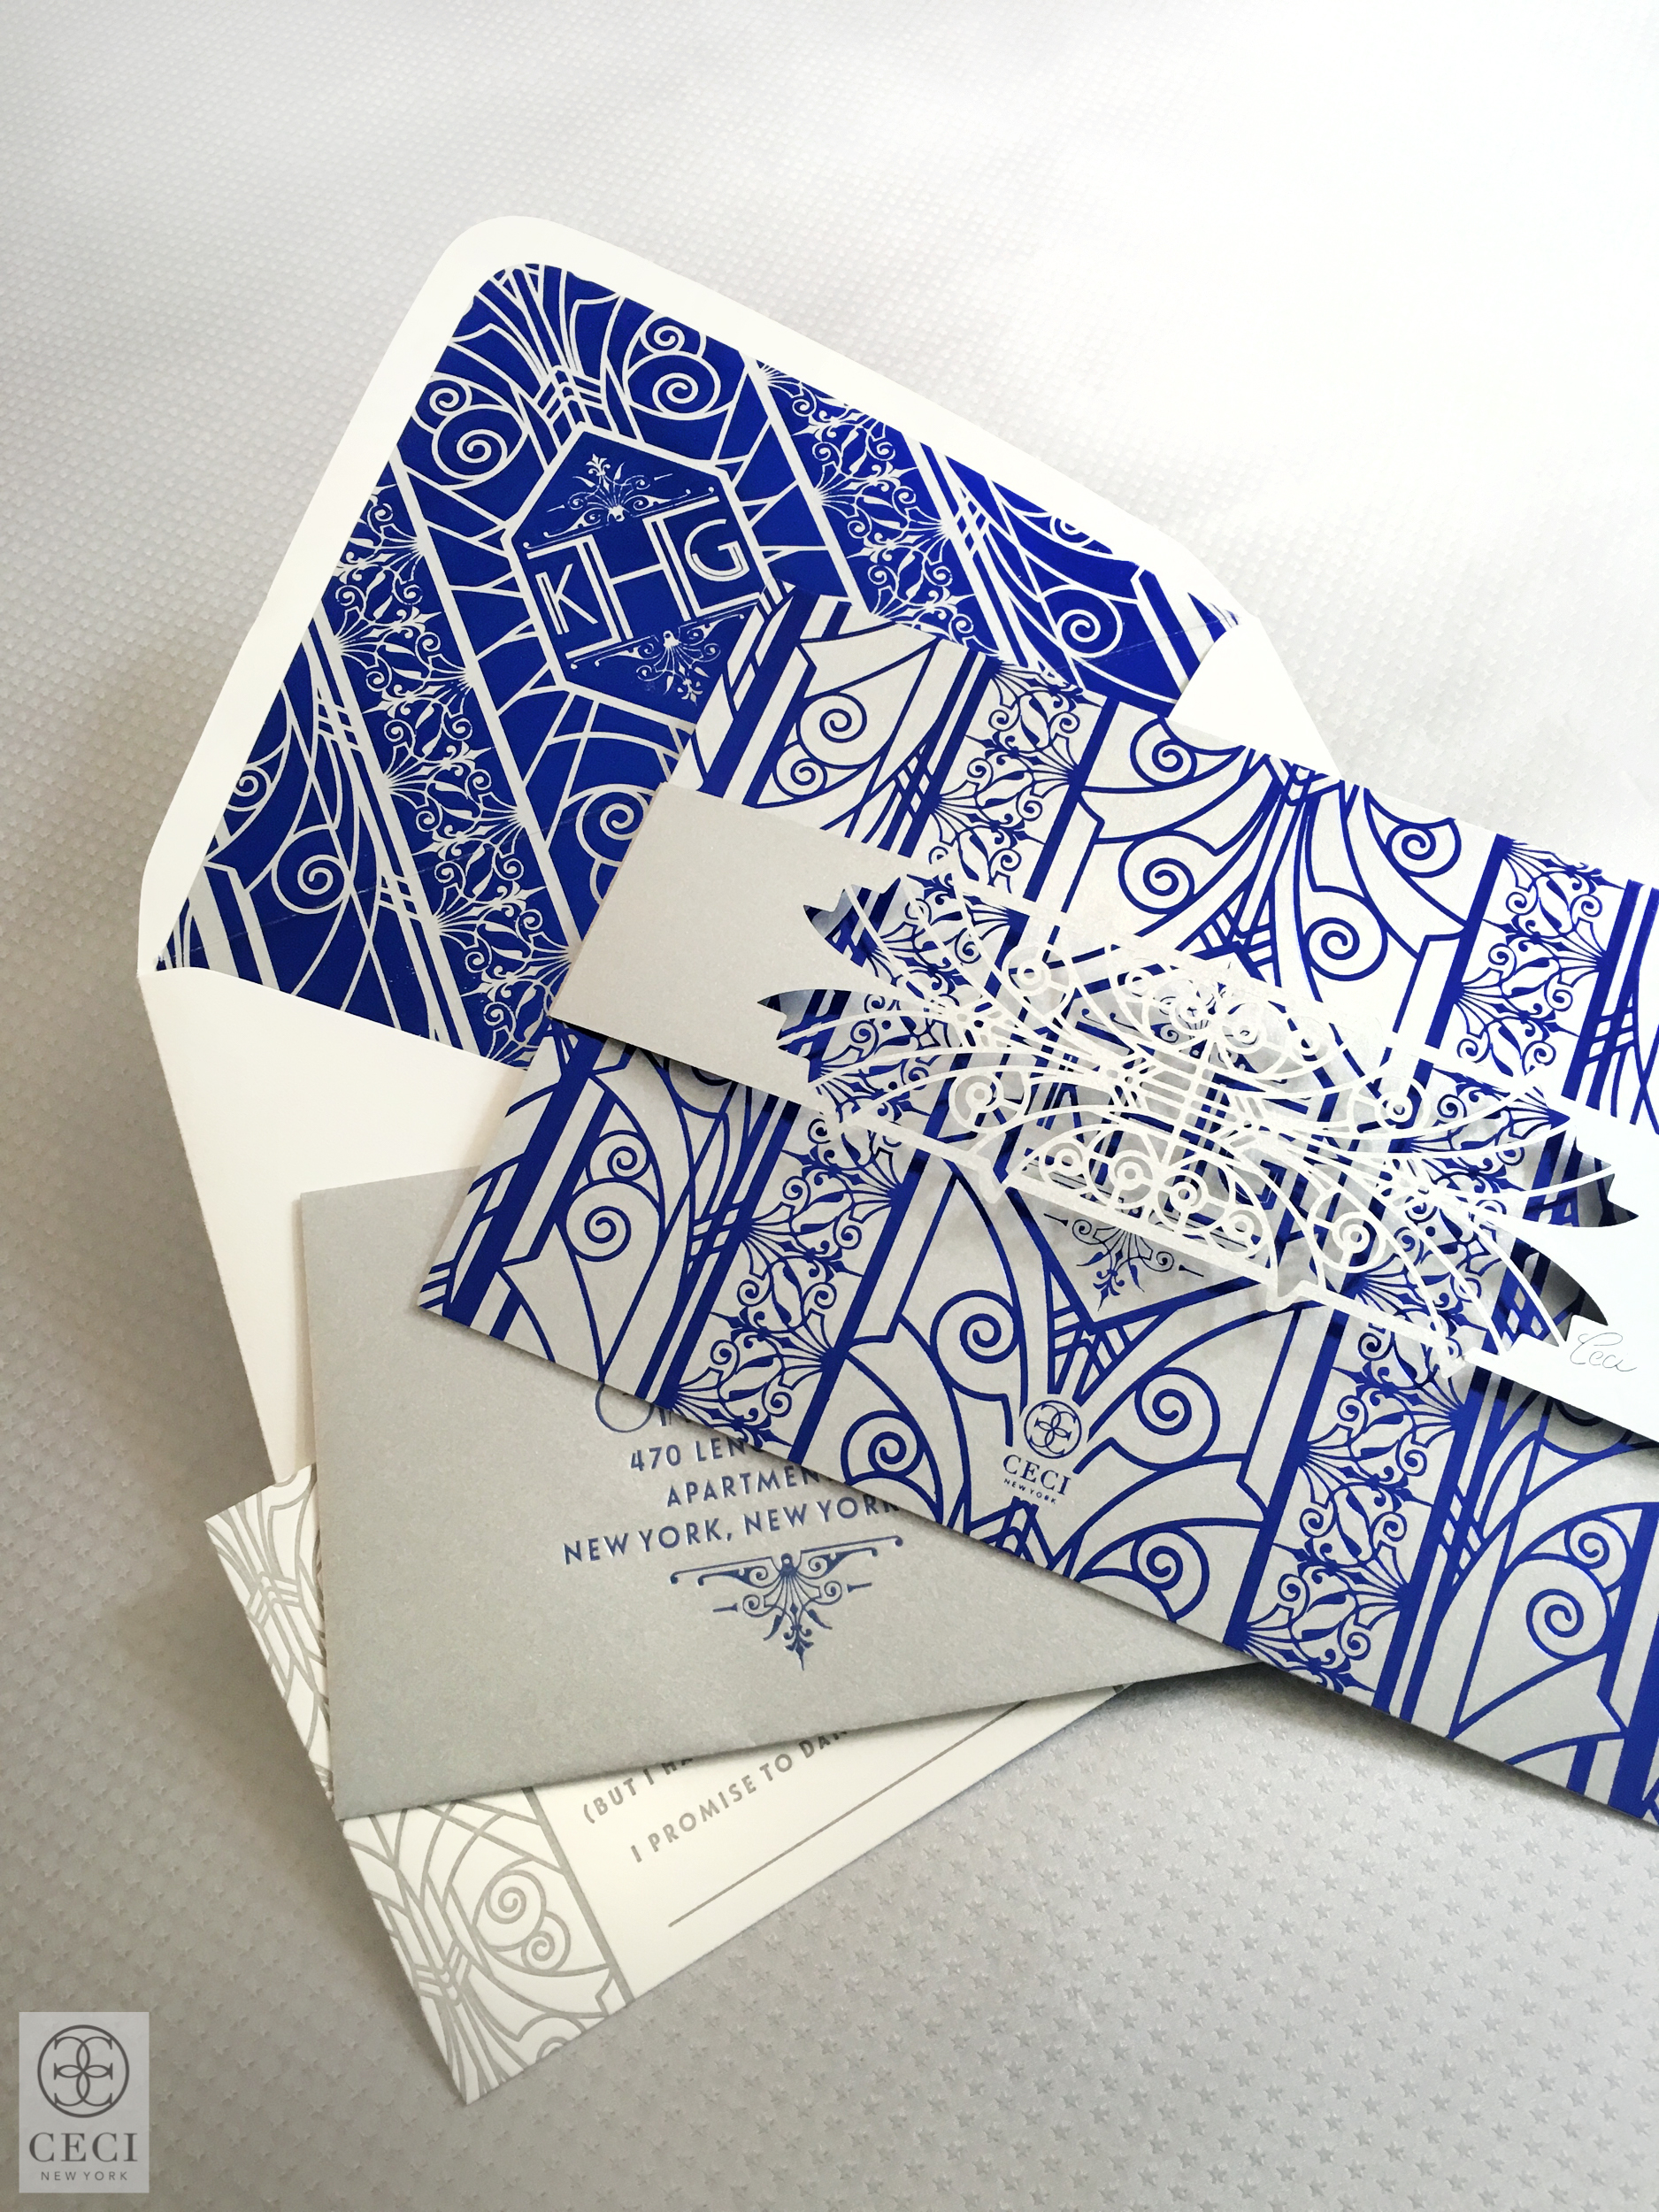 Ceci_New_York_New_Jersey_Invitations_Wedding_New_York_Elegance_Silver_Blue_Letterpress_Deco_Classic_Foil_Stamping_Custom_Couture_Personalized-110.jpg